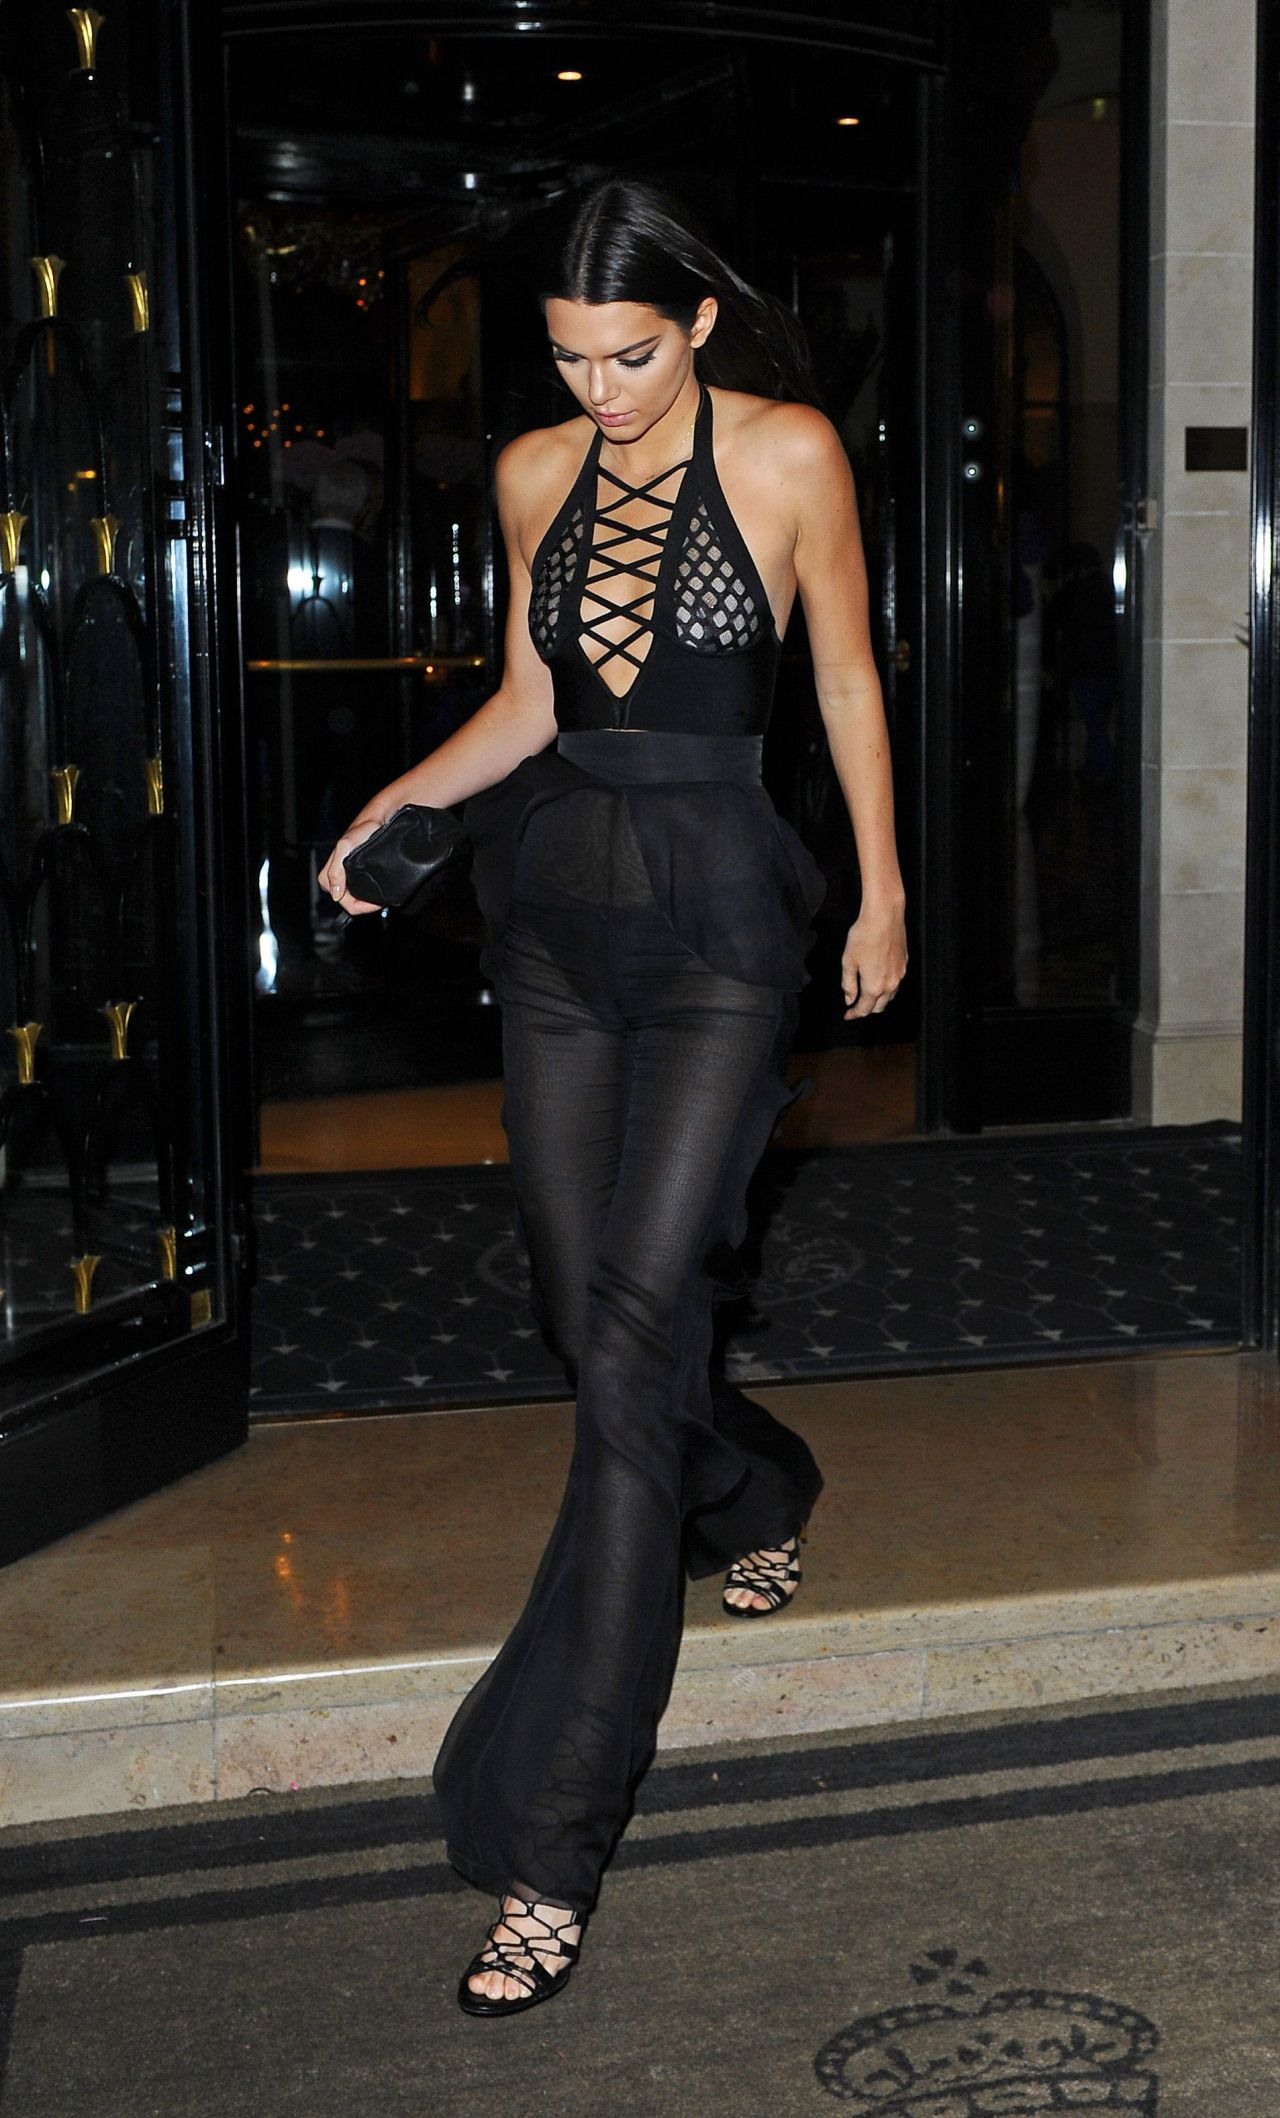 kendall-jenner-night-out-style-reserve-restaurant-in-paris-september-2015_5